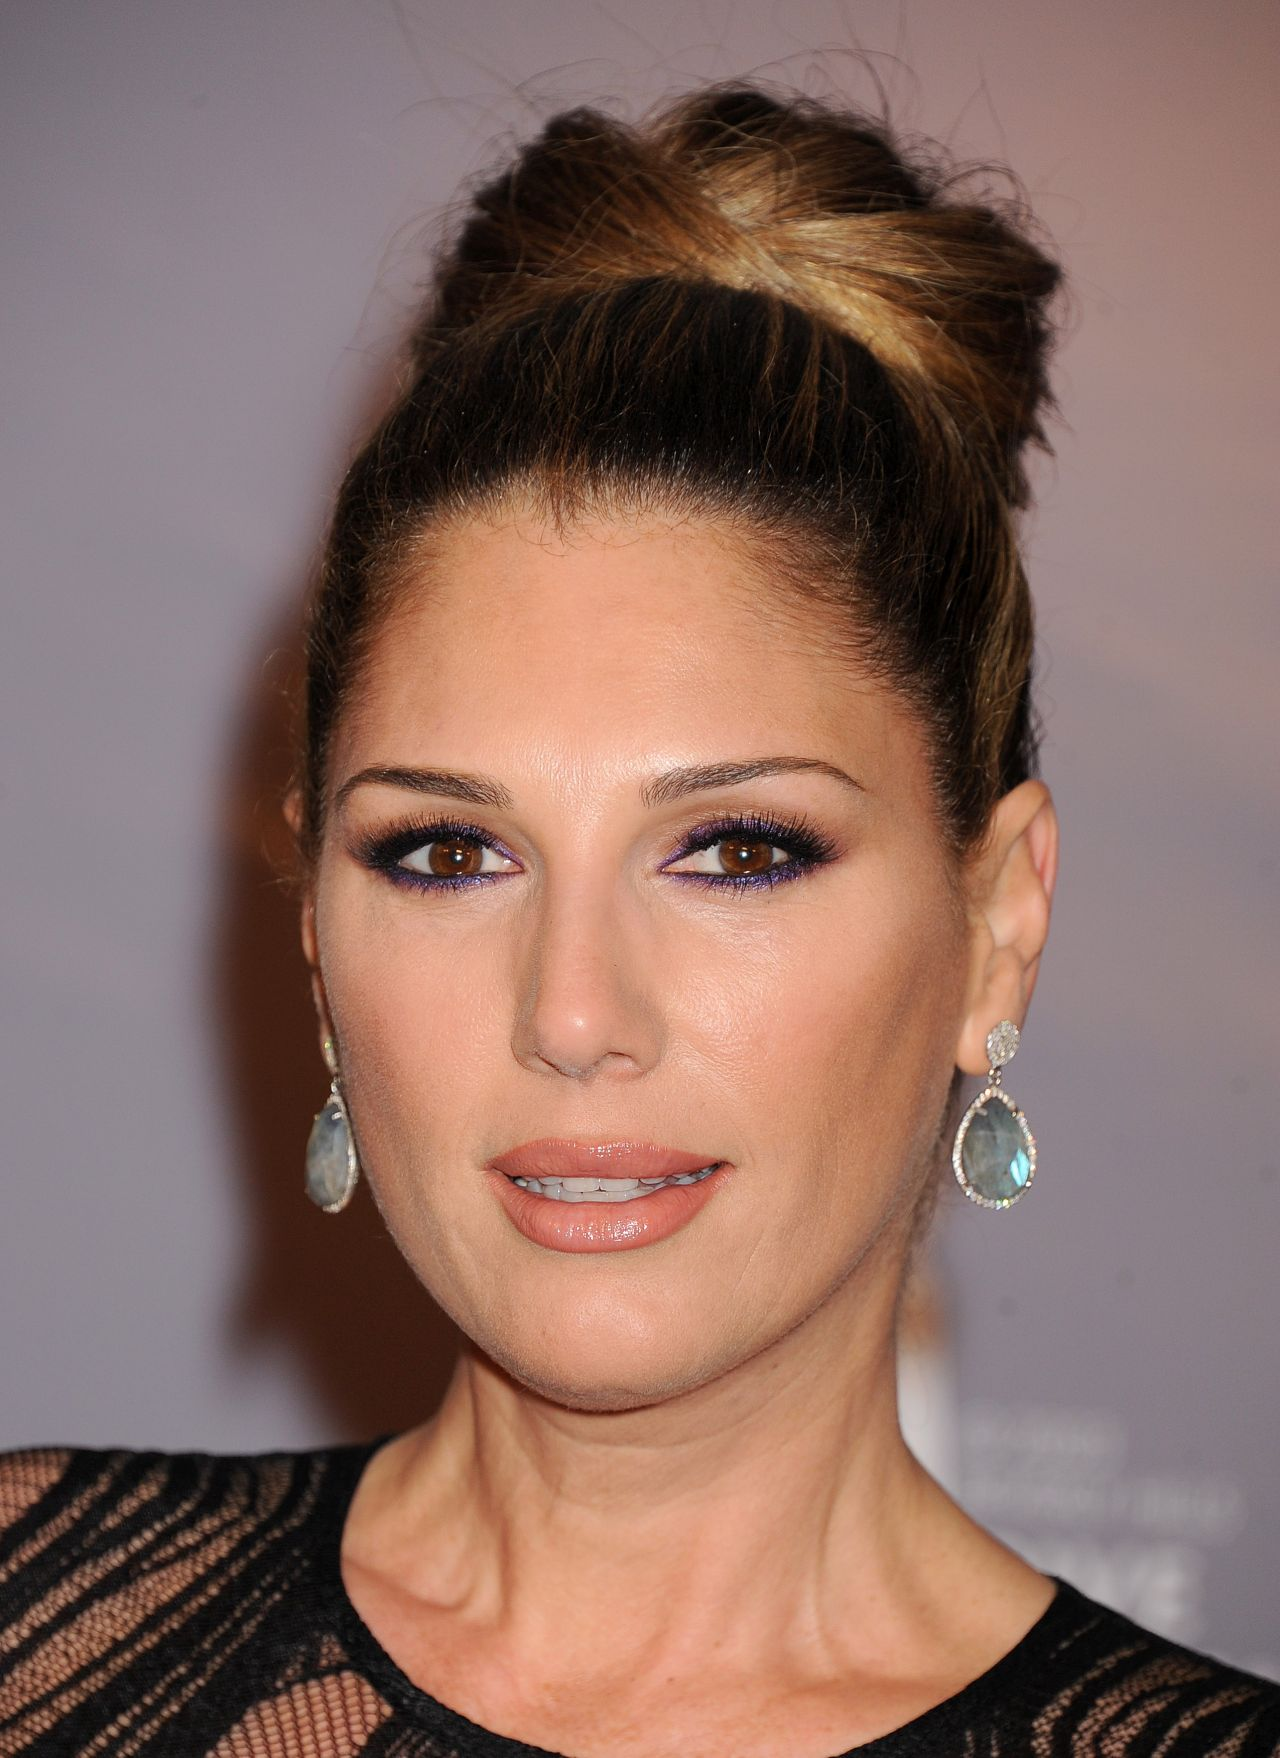 Daisy Fuentes - 2014 Rodeo Drive Walk of Style - March 2014